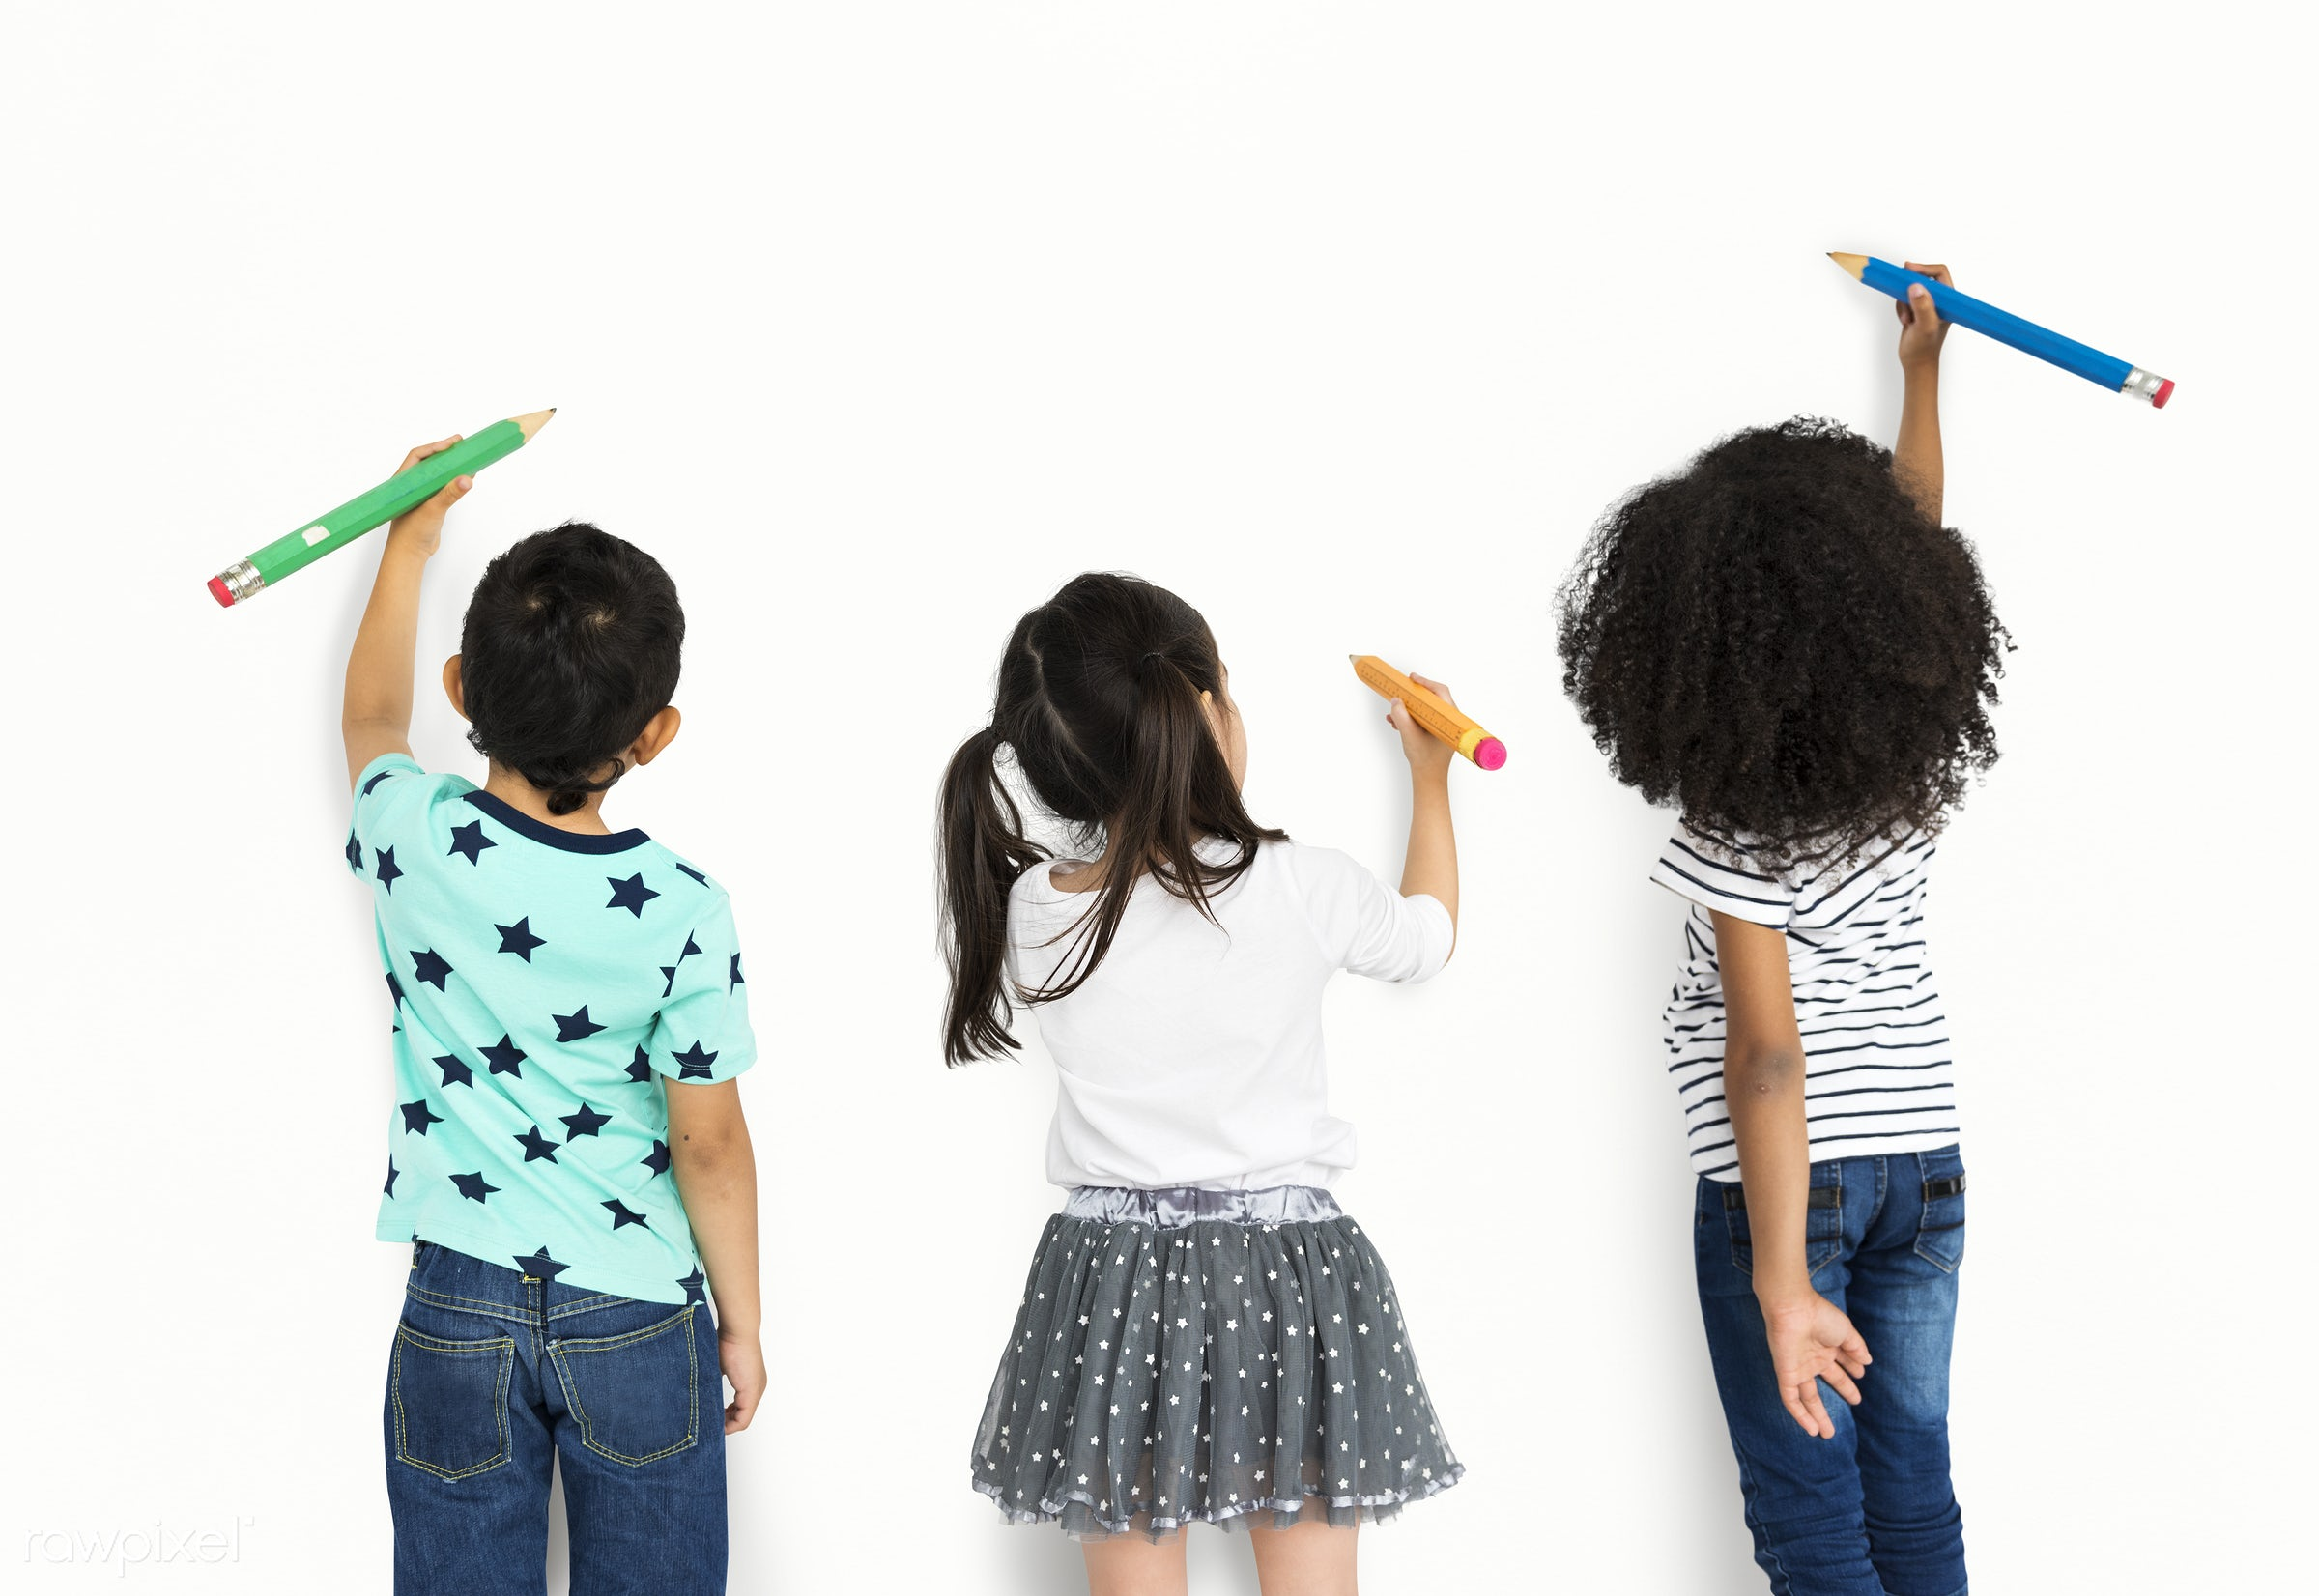 studio, expression, person, diverse, isolated on white, little, children, people, creativity, together, drawing, draw, pose...